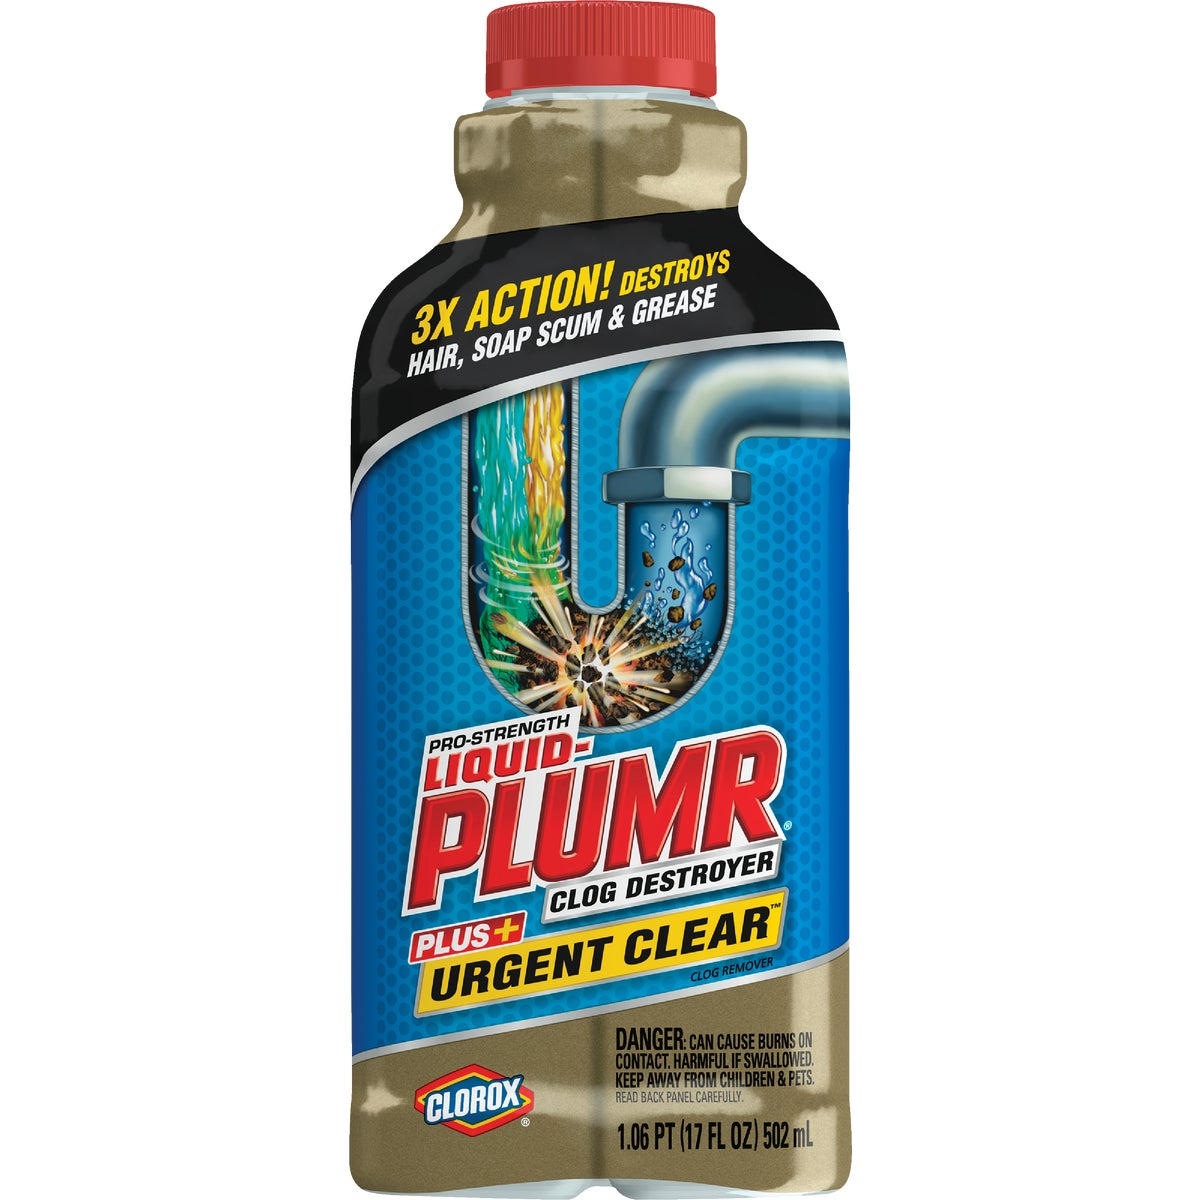 17OZ LIQ PLUMR URG CLEAR - 30548 by Clorox/home Cleaning